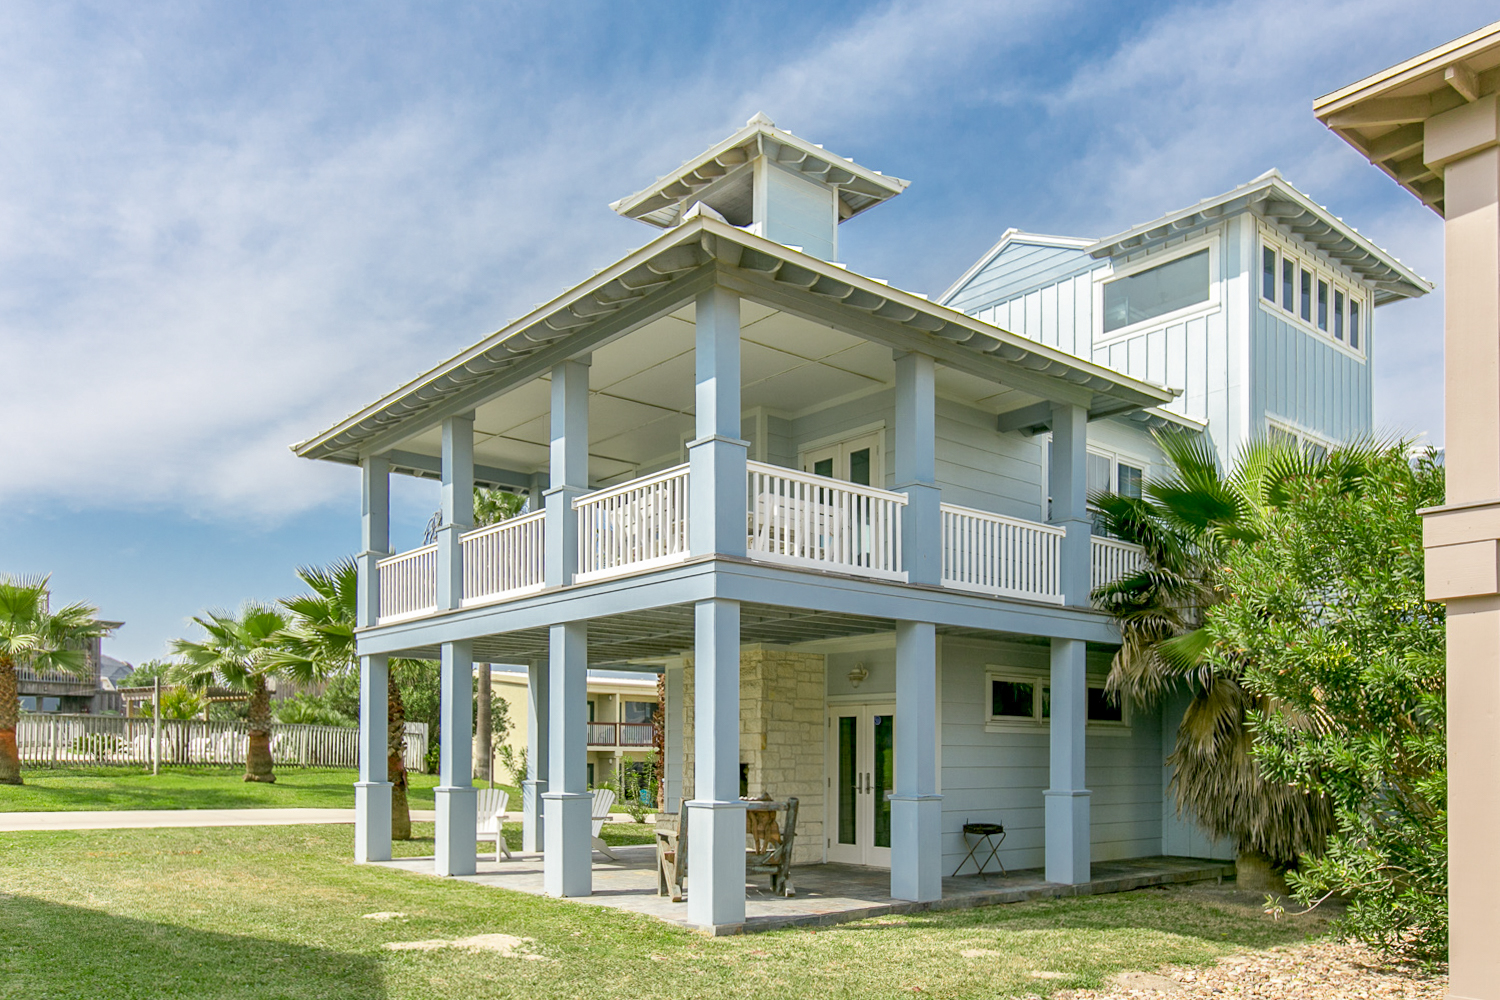 Port Aransas TX Vacation Rental Our covered deck